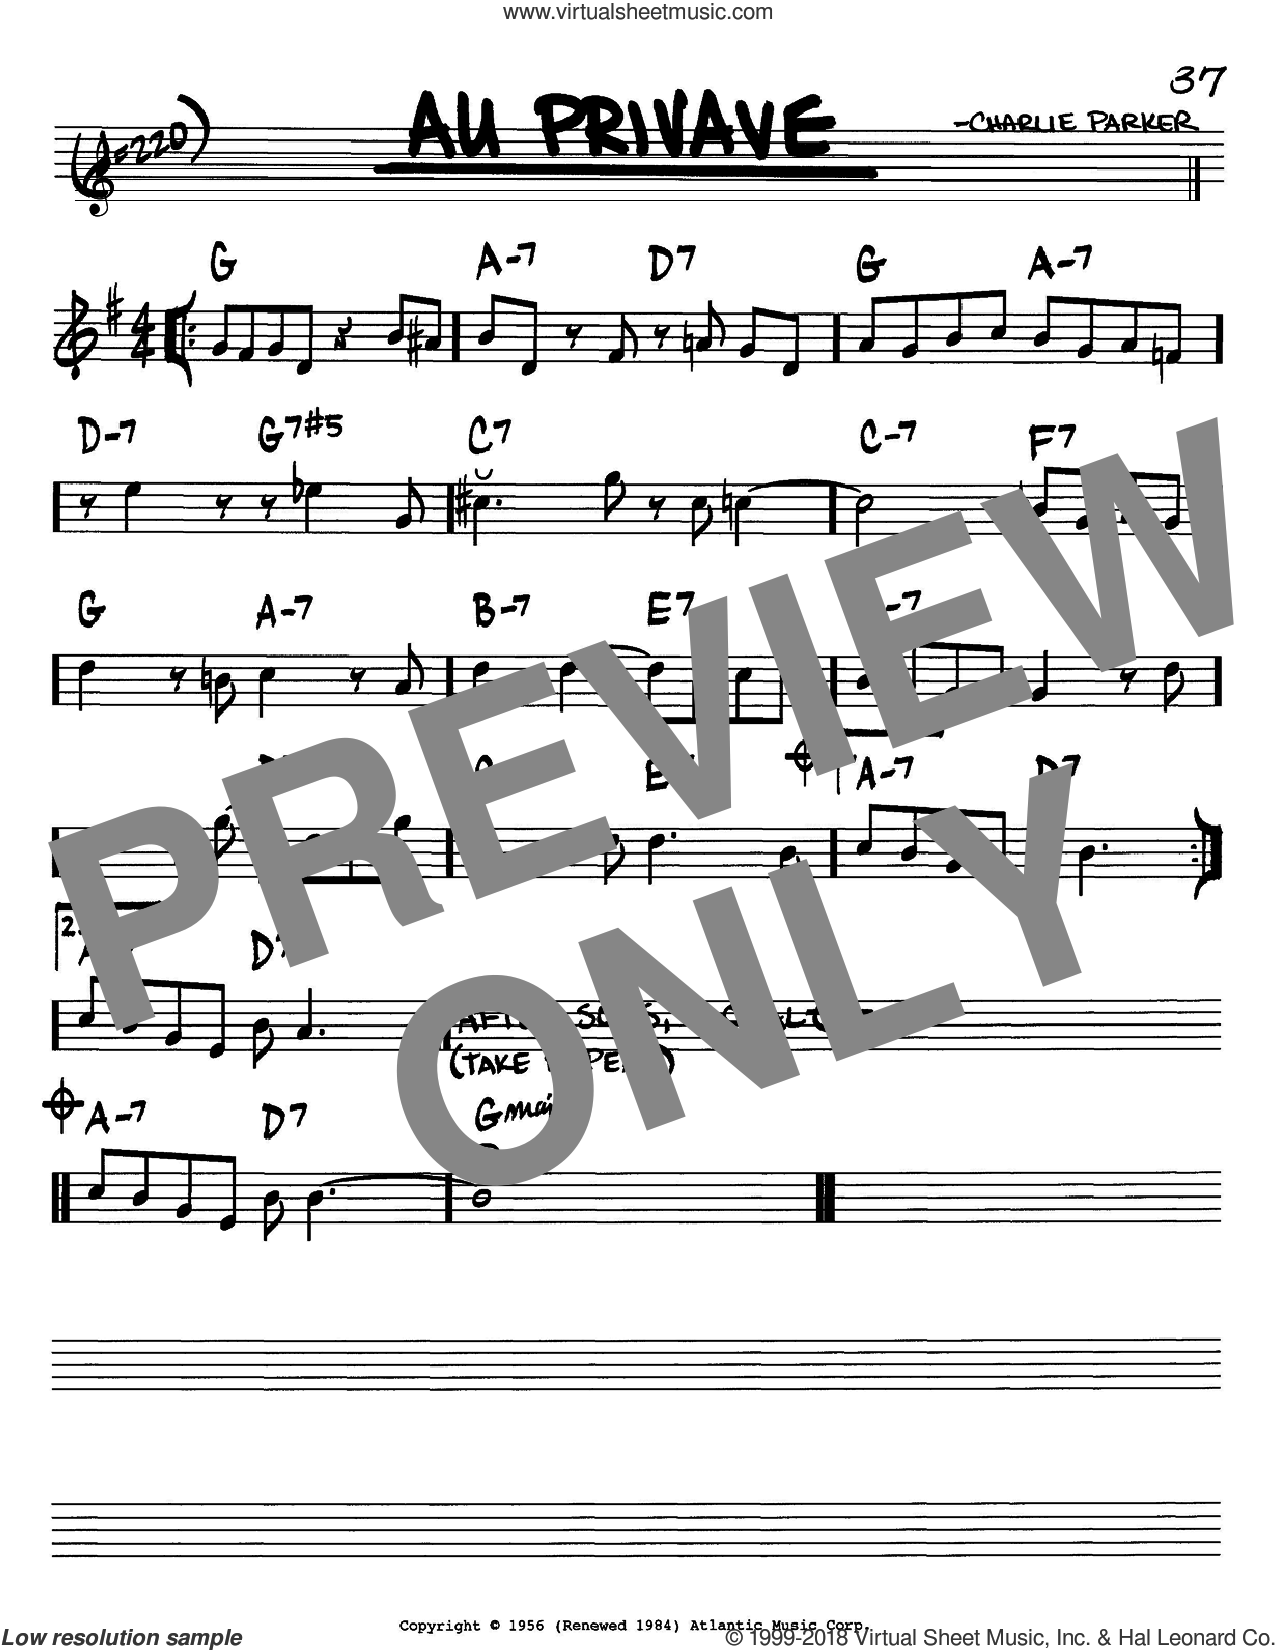 Au Privave sheet music for voice and other instruments (Bb) by Charlie Parker. Score Image Preview.